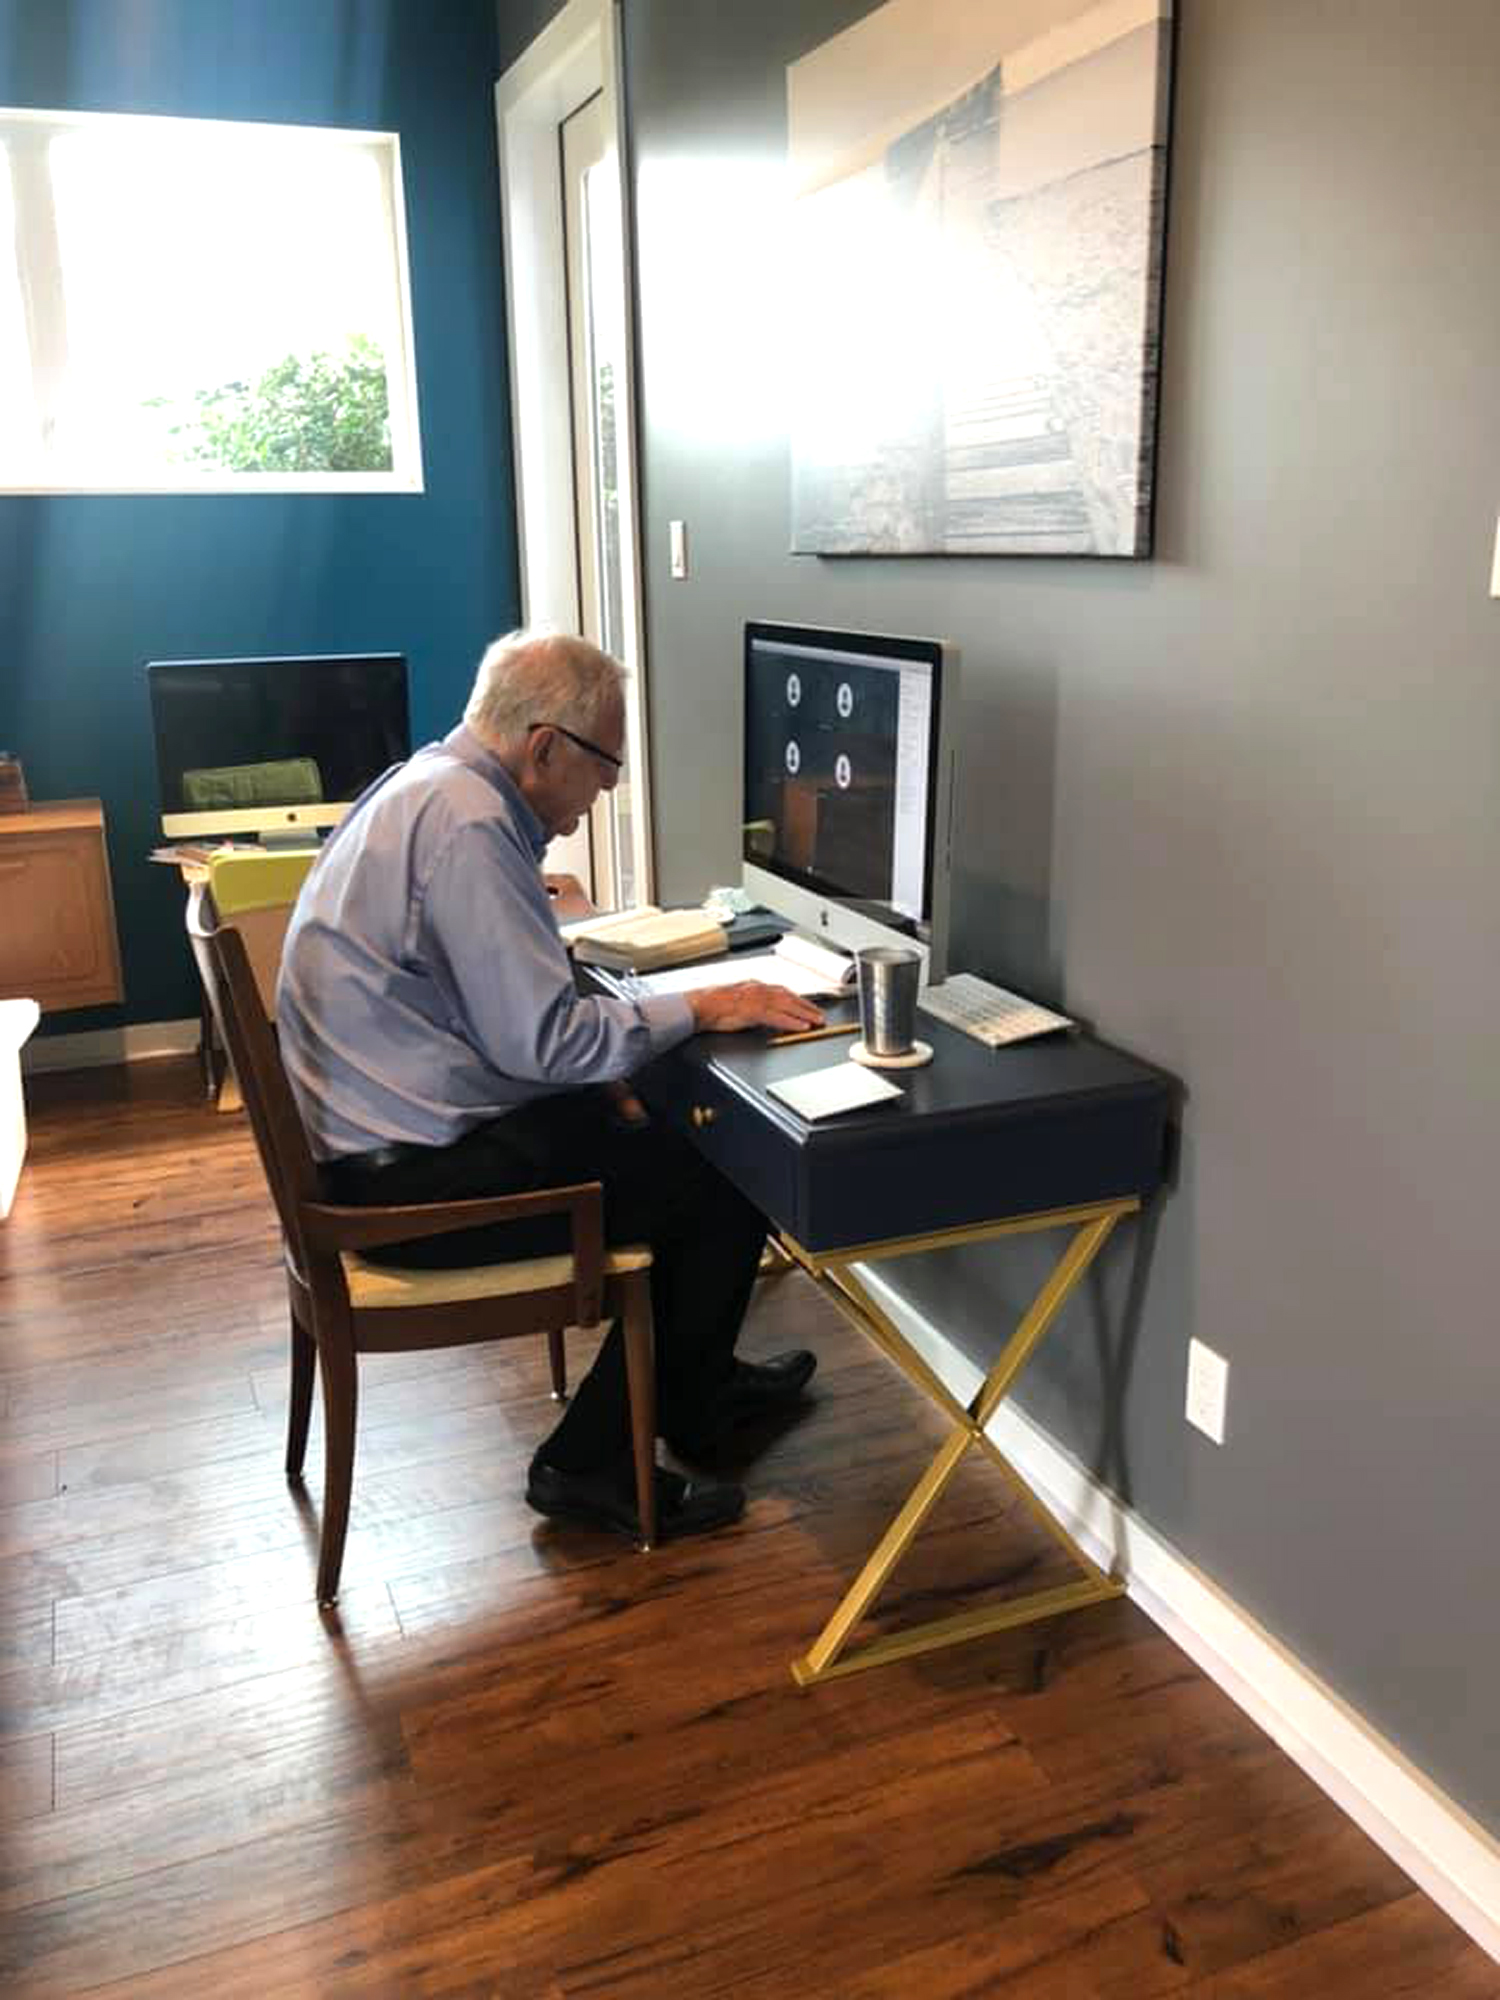 Charles Krohn, a professor of English at The University of St. Thomas for 50-plus years, as he navigated remote learning